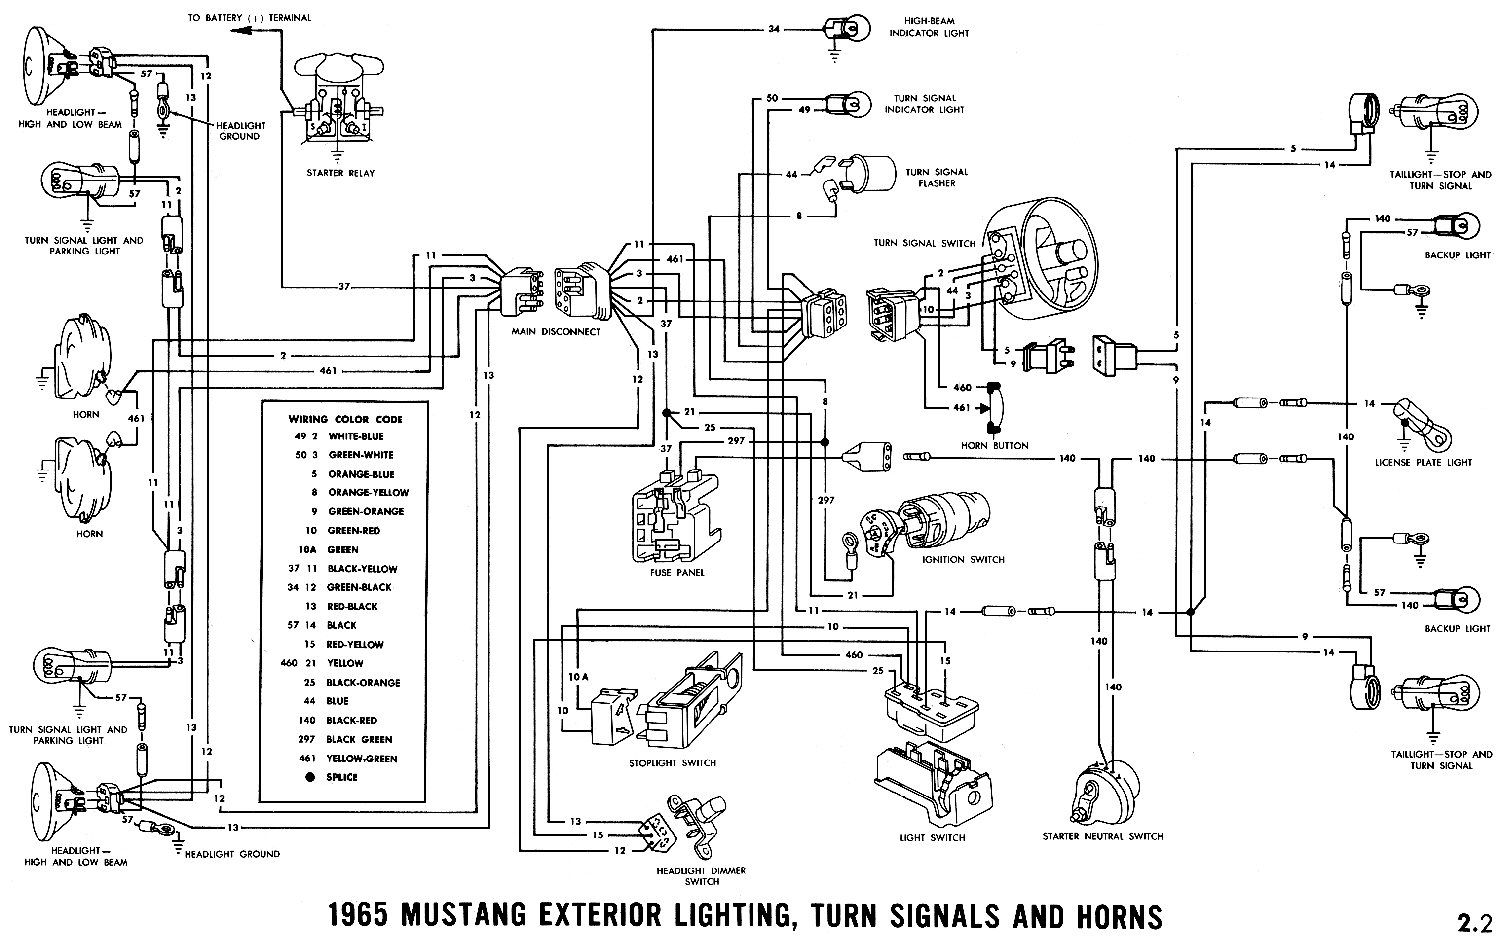 1968 Mustang Headlight Switch Wiring Diagram Wiring Diagram Dedicated Dedicated Pasticceriagele It